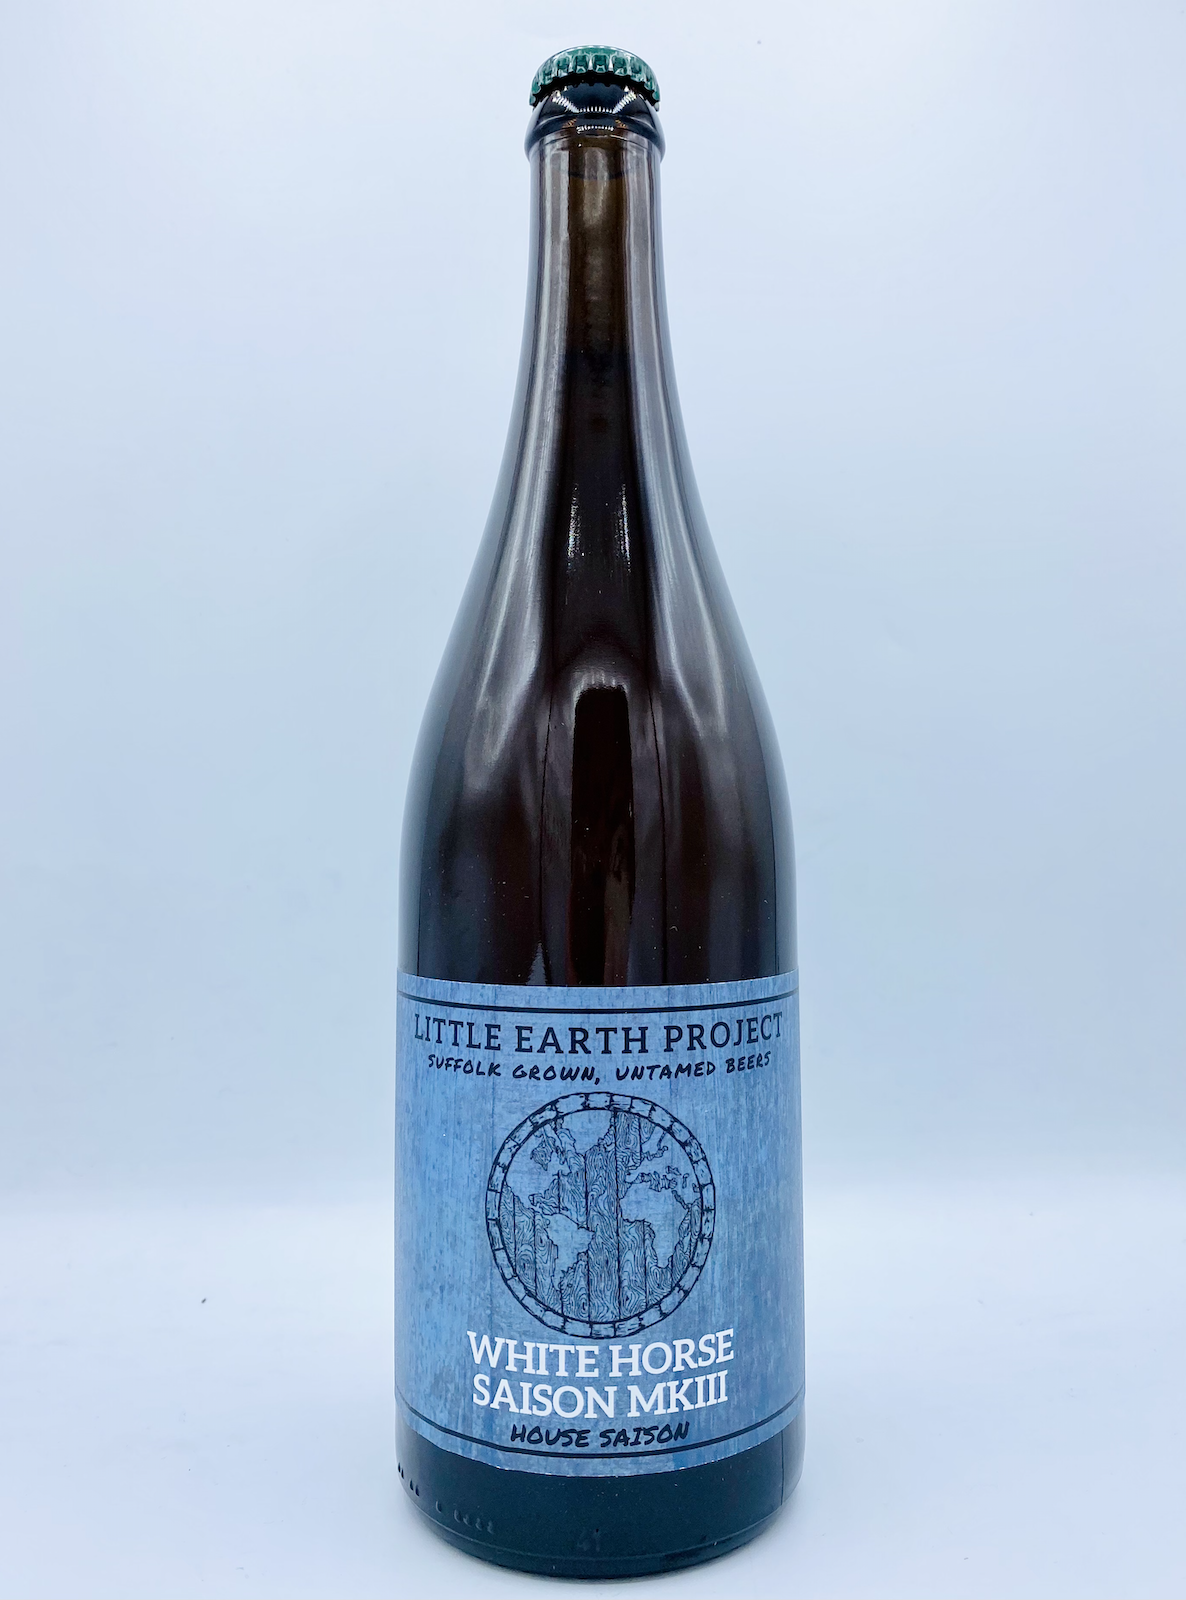 Little Earth Project - White Horse Saison 6.8%